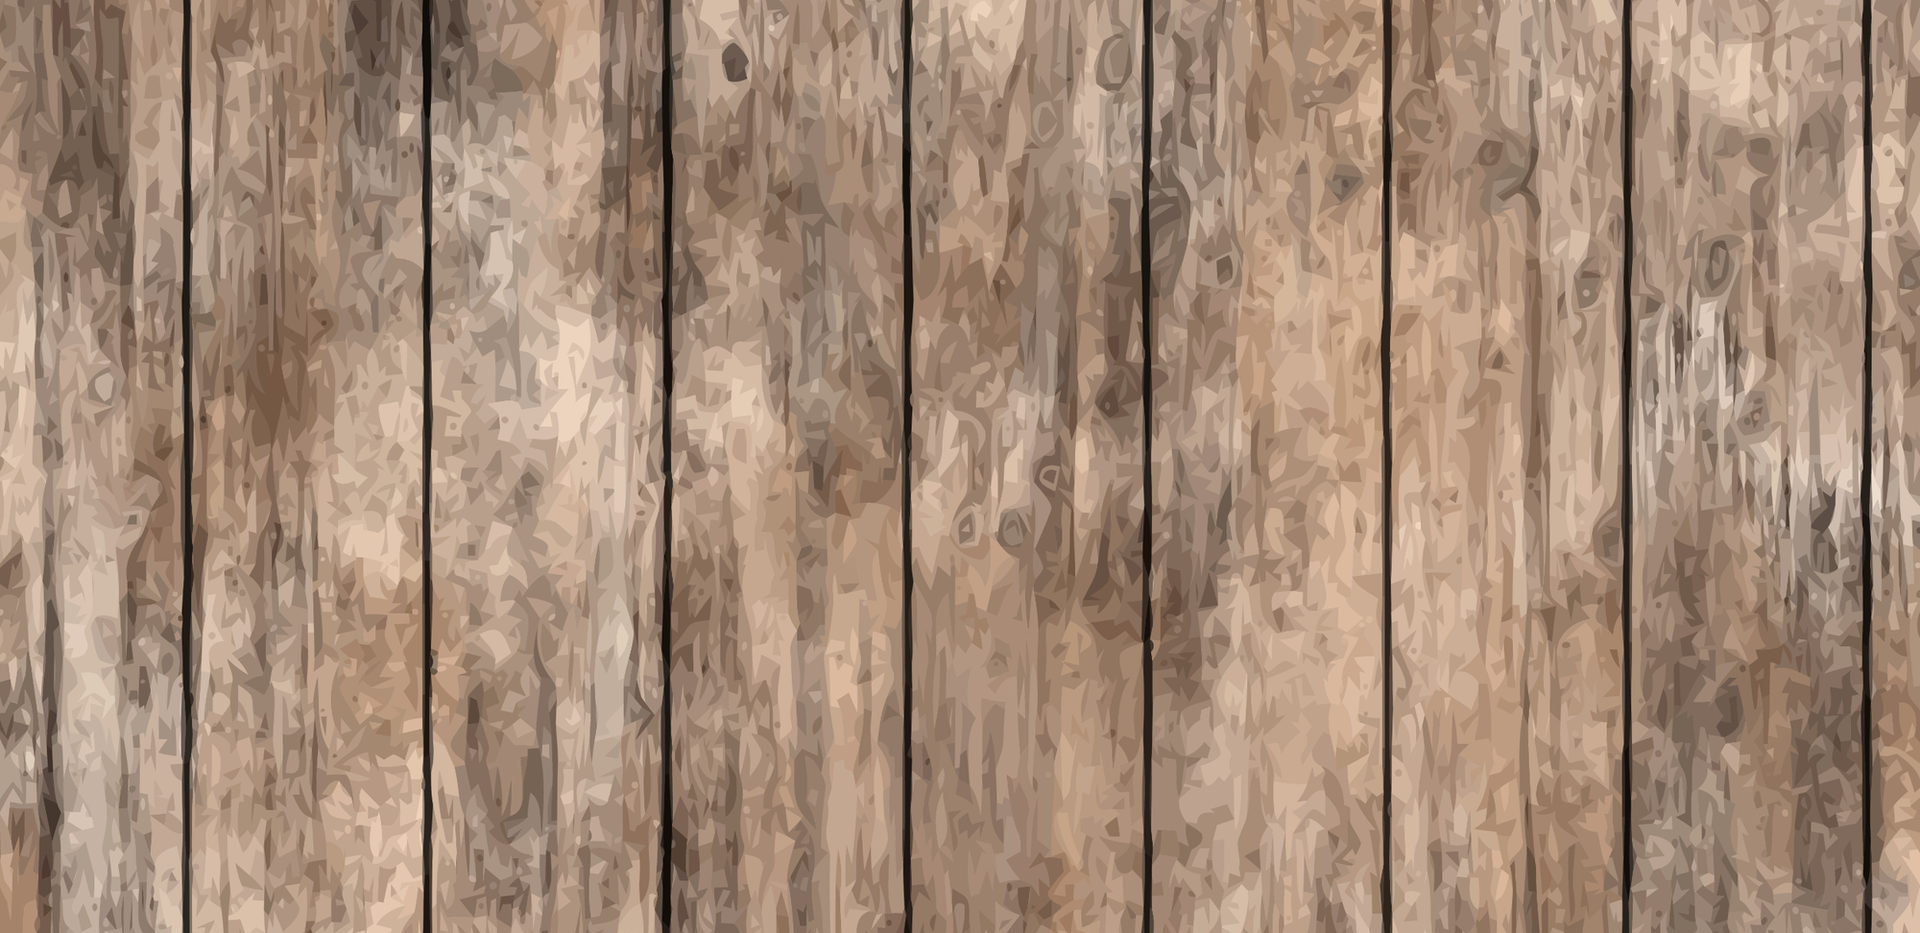 08 Rustic Wood.png